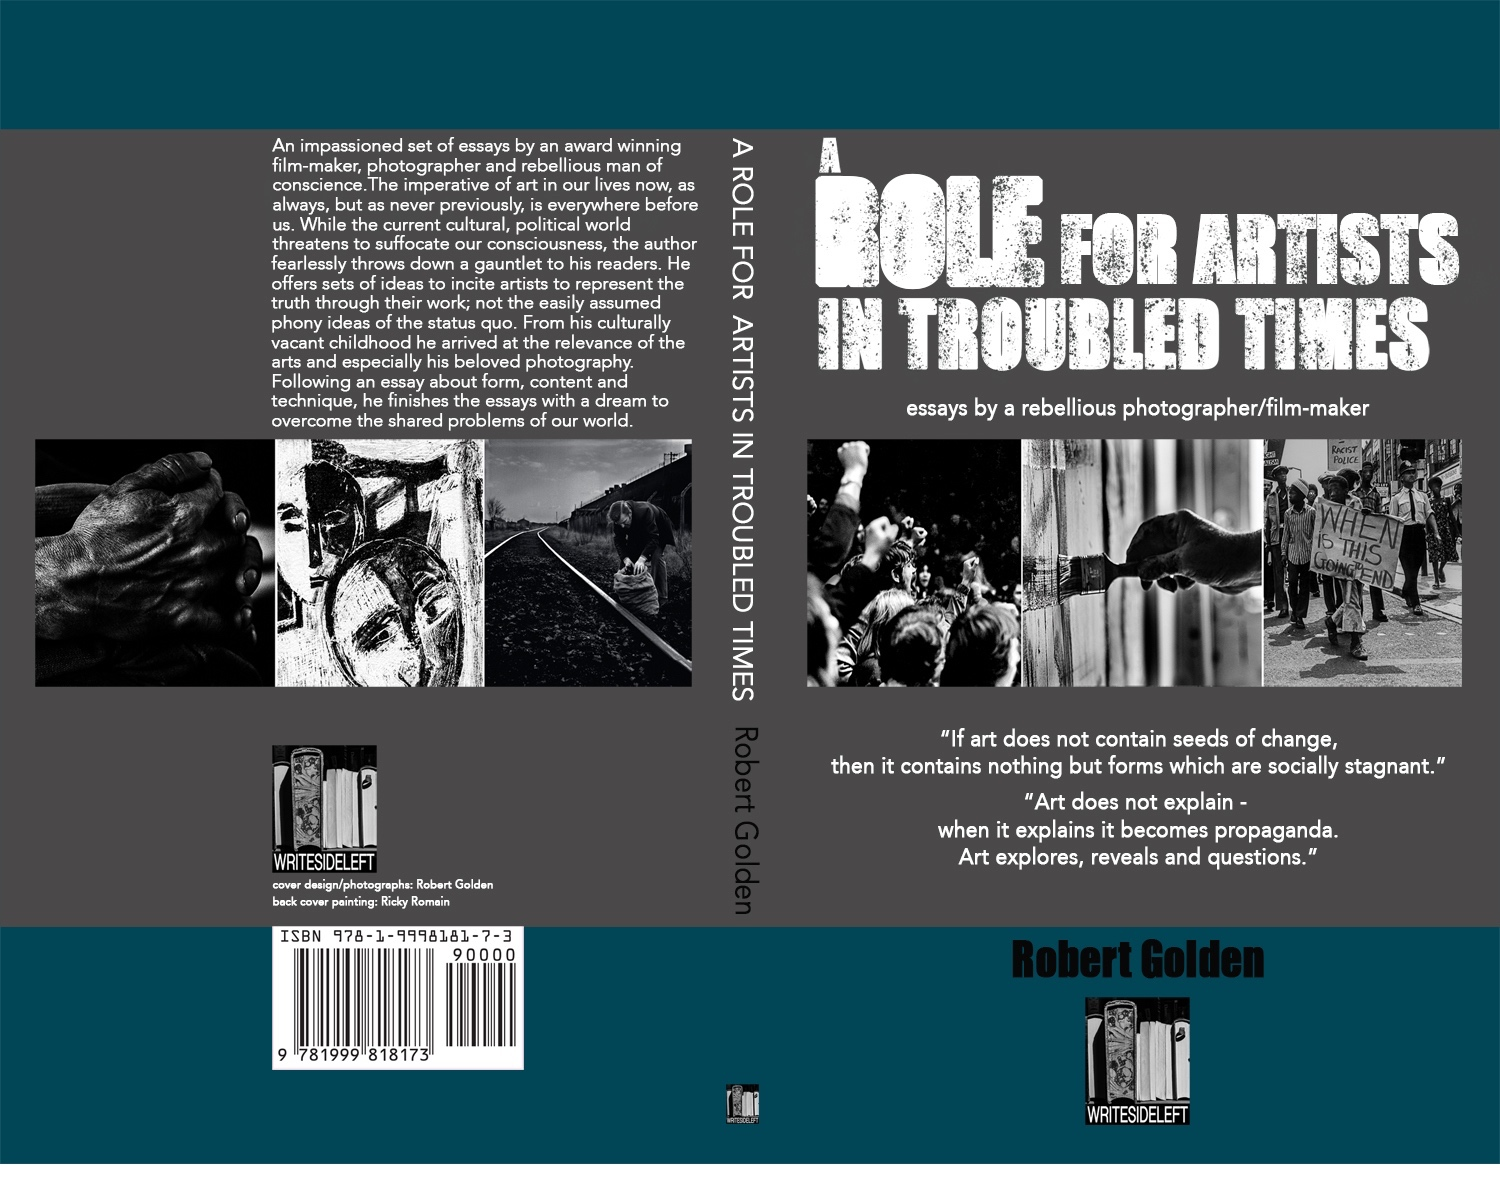 Robert Golden, a unique multi-award winning photographer, film-maker and mentor shares his experiences in A Role for Artists in Troubled Times. It is a powerful addition to today's debate about the purpose and practice of photography in times when we urgently need to try harder to get it right.  Robert Golden's contribution to that conversation consists of five essays, in turns polemic, angry, melancholic, generous, hopeful and sometimes downright appalled at today's crisis of conscience around the world in photography that could reflect and represent it.  He takes us on his voyage of discovery, from his first sighting Diego Rivera's Detroit Industrial Murals, through Da Vinci's portraits and Michelangelo's Slaves, on to Edward Weston's visions of beauty and love, Paul Strand's photo essays about the inherent dignity of all people and all races, to Henri Cartier Bresson's (perhaps the author's too) 'decisive moment', as a  complete   photographer  emerges. The one who compares and contrasts Caravaggio's democratisation of the subjects of art with those of W Eugene Smith's astonishing photographs.  Robert creates a bespoke guide, learnt through his diligent and creative practice, for today's photographers and other artists.   BUY IT    HERE  .   FILMED REFERENCES:    The film below is composed of photographs and paintings that are mentioned in the book's text. If you bring the film up onto your screen and stop and start it before and after each section you will see that each section referred to in the book is separated by about 3-4 seconds of black .   You can find it    HERE     REVIEWS:   A BLUEPRINT FOR ARTIST ACTIVISTS   Robert Golden is one of the great artist thinkers of our time. I have had the privilege of working with him closely for the last decade and a half on The Complete Freedom of Truth, a creative exchange programme for young artist activists spanning Europe, and he has been responsible for shaping a lot of my thinking and understanding about the time